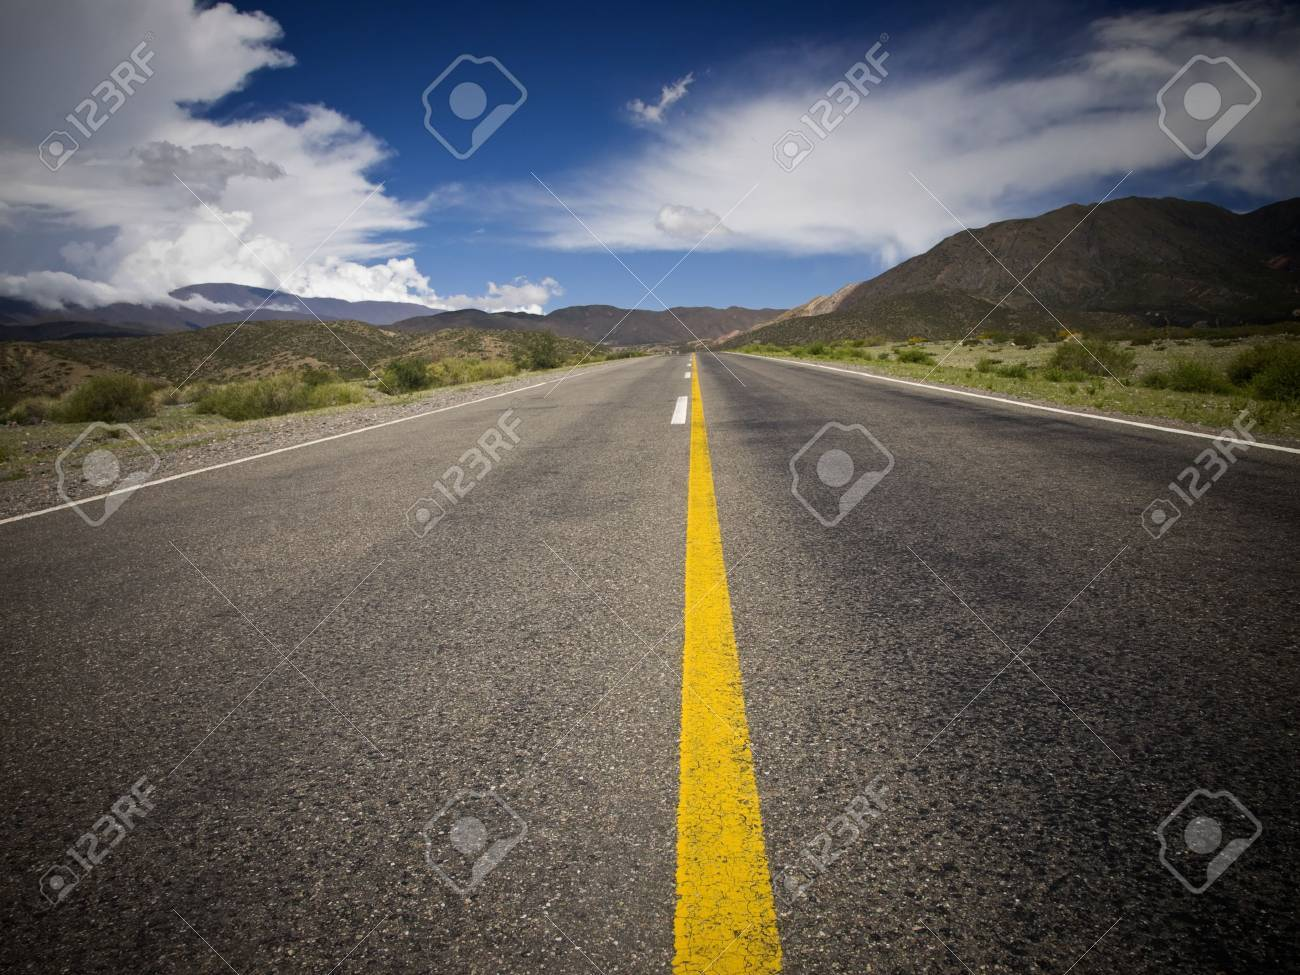 A desert road by the mountains surrounded by colorful nature. Stock Photo - 4802518